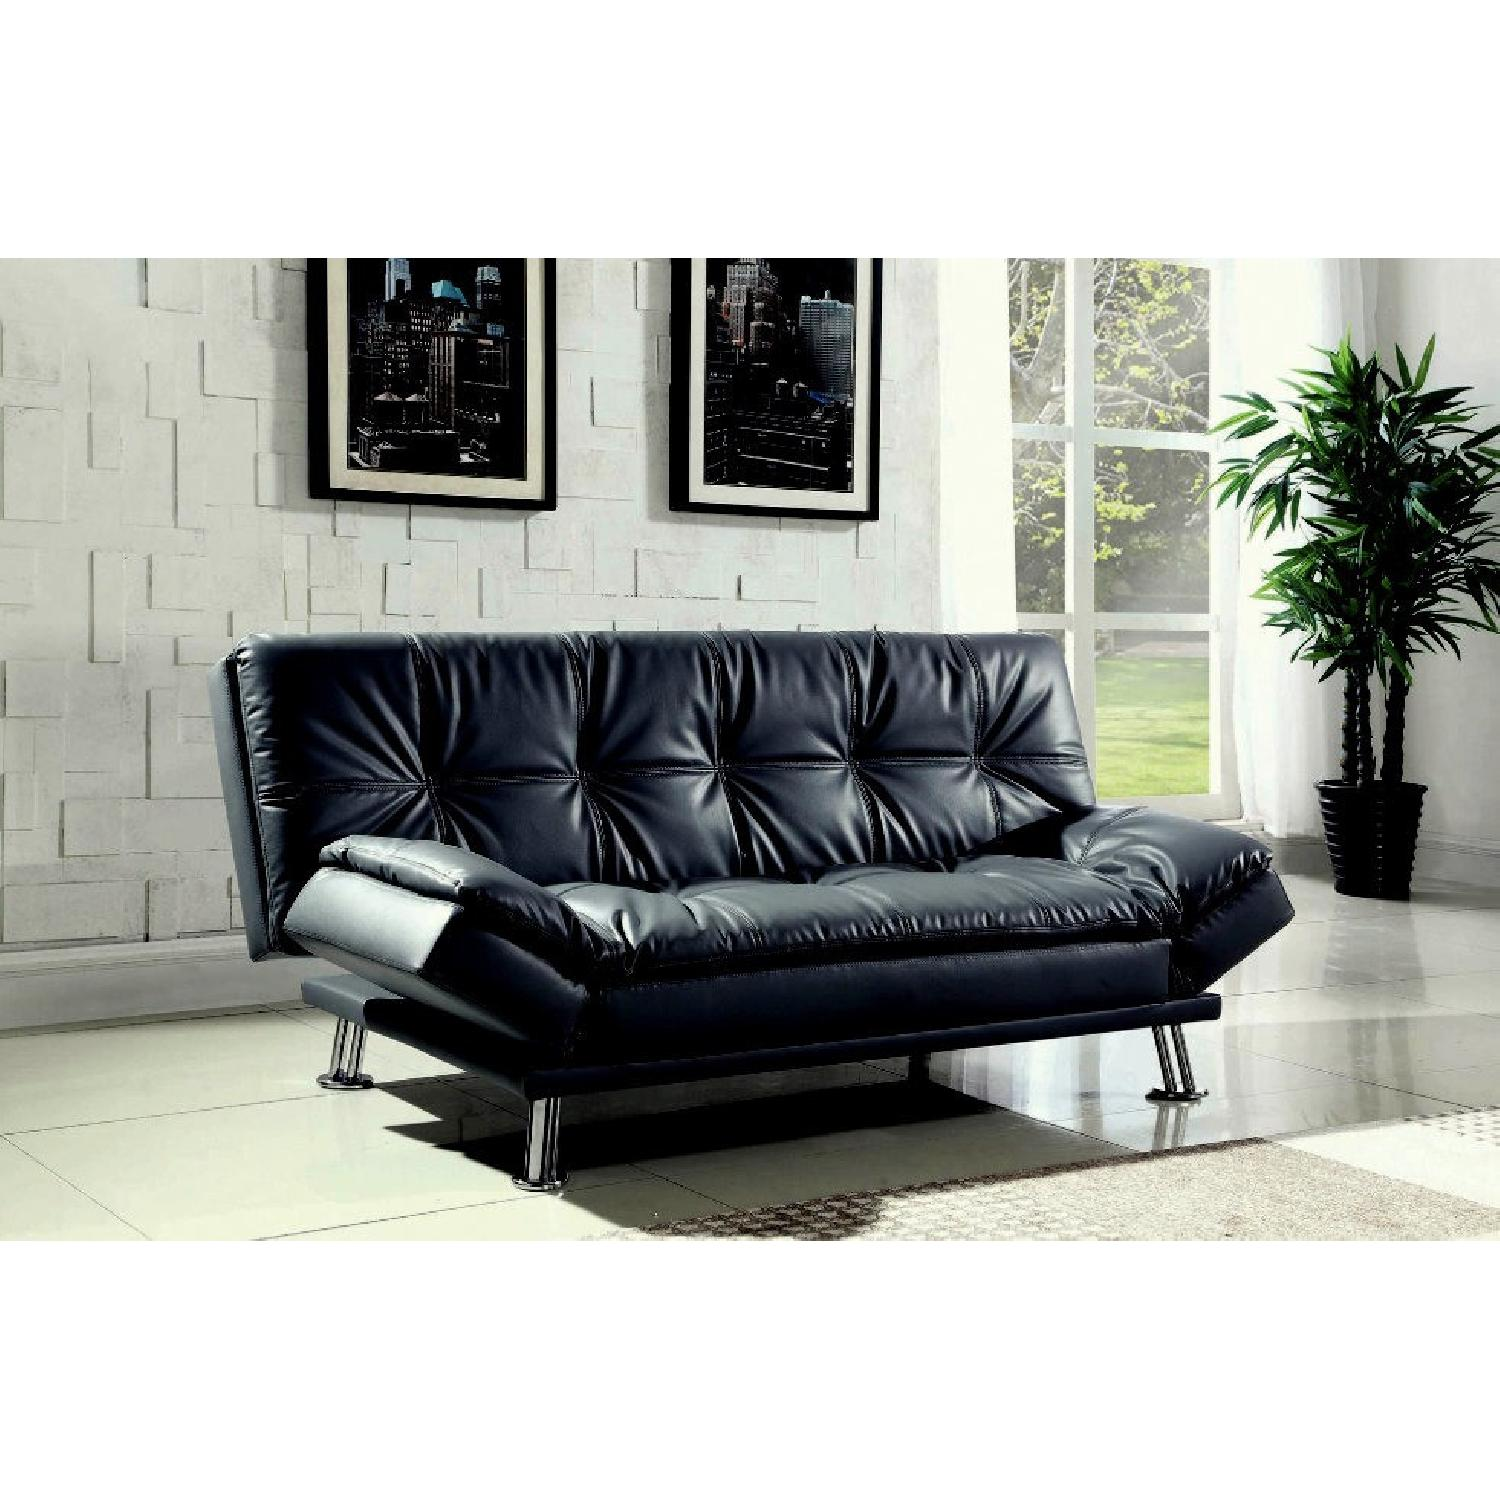 Coaster Contemporary Black Faux Leather Sofa Bed - image-1